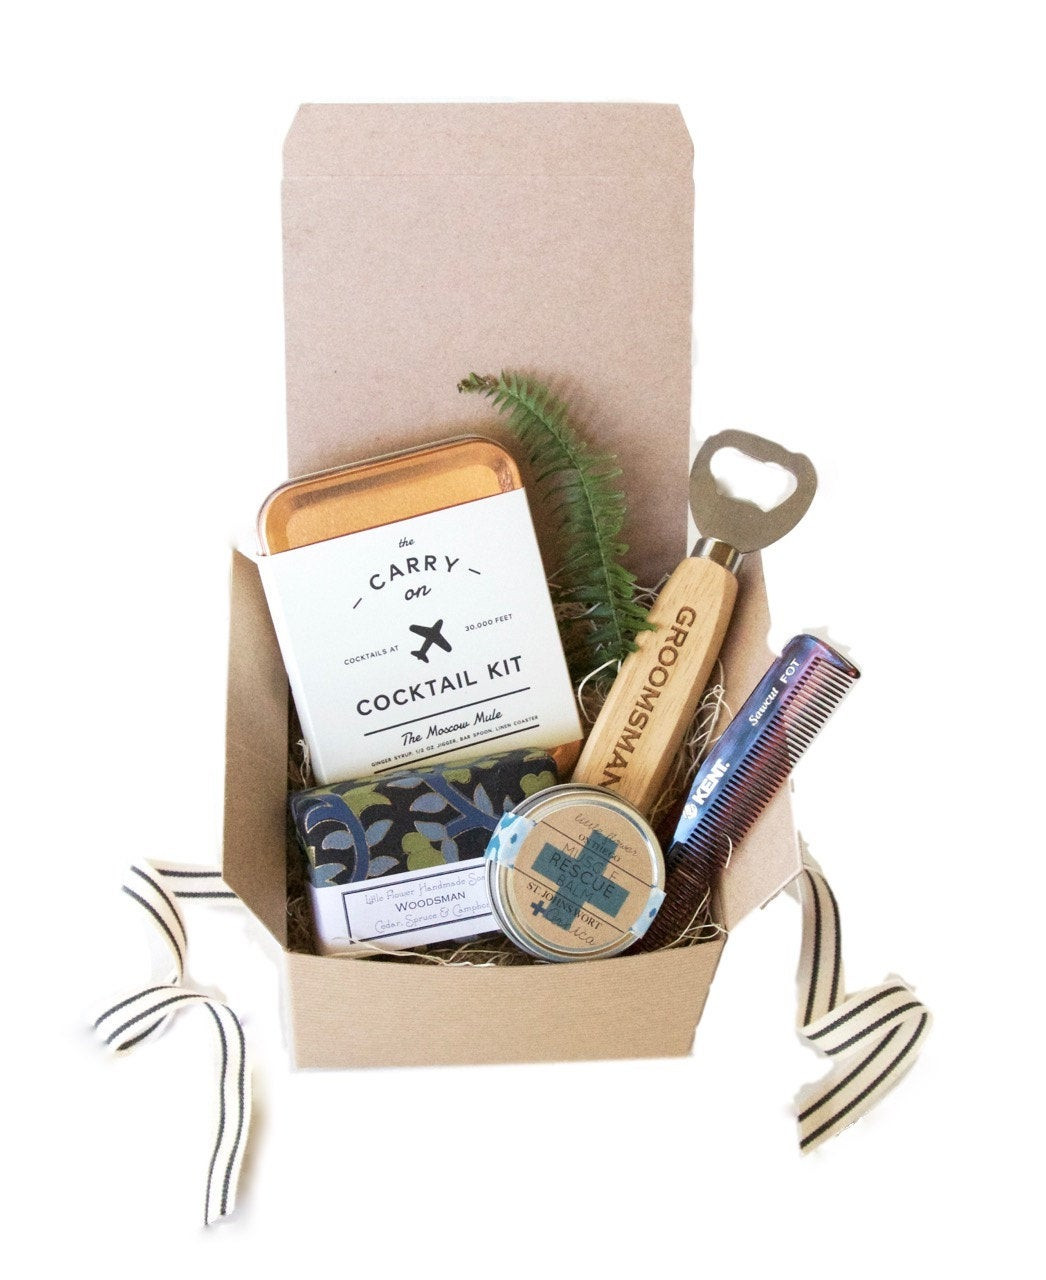 Best ideas about Groom Gift Ideas . Save or Pin Groomsman Gift Groomsmen t ideas by LittleFlowerSoapCo Now.